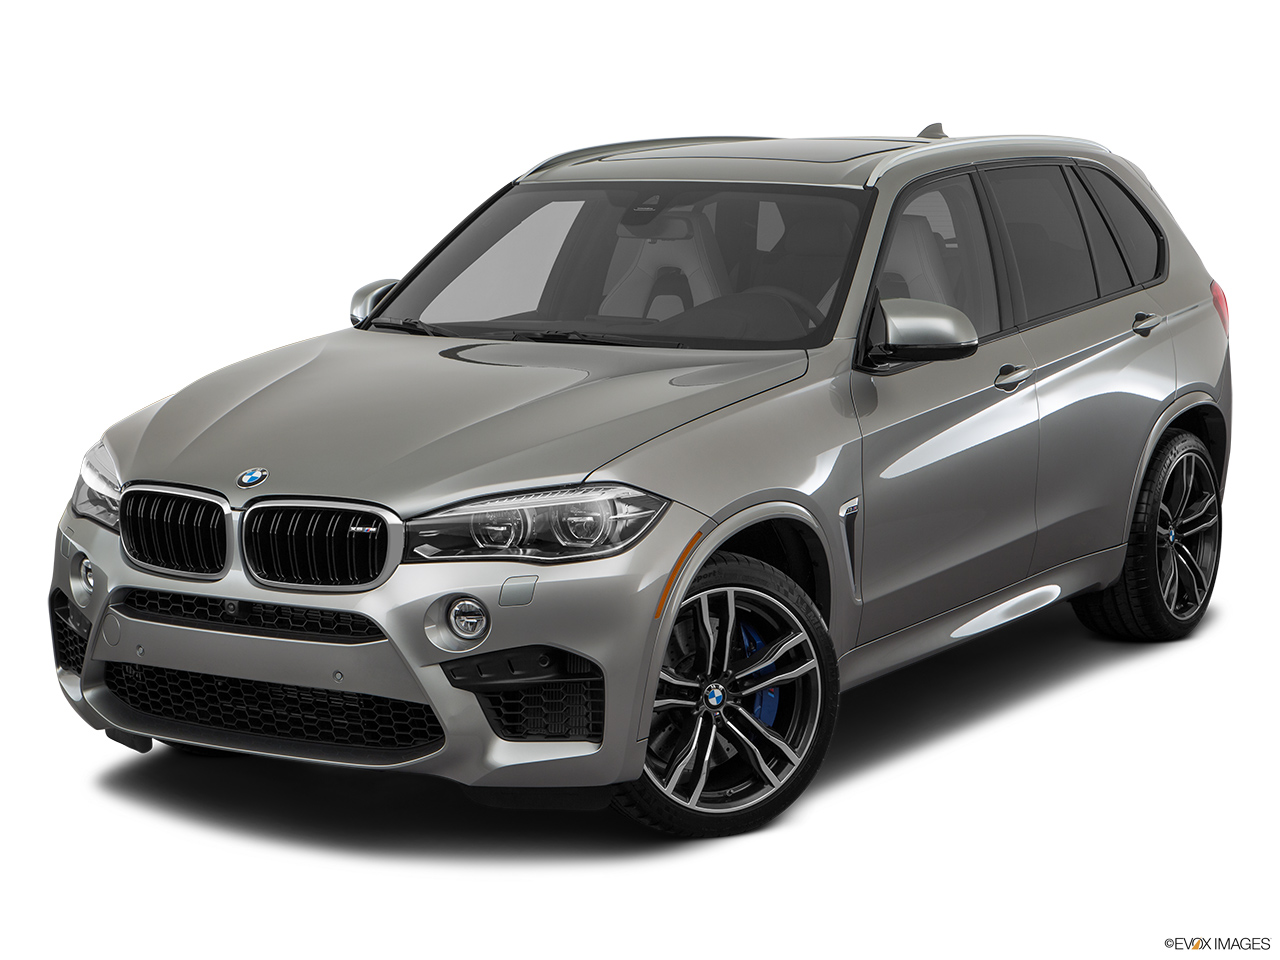 2018 bmw x5 m prices in uae gulf specs reviews for. Black Bedroom Furniture Sets. Home Design Ideas